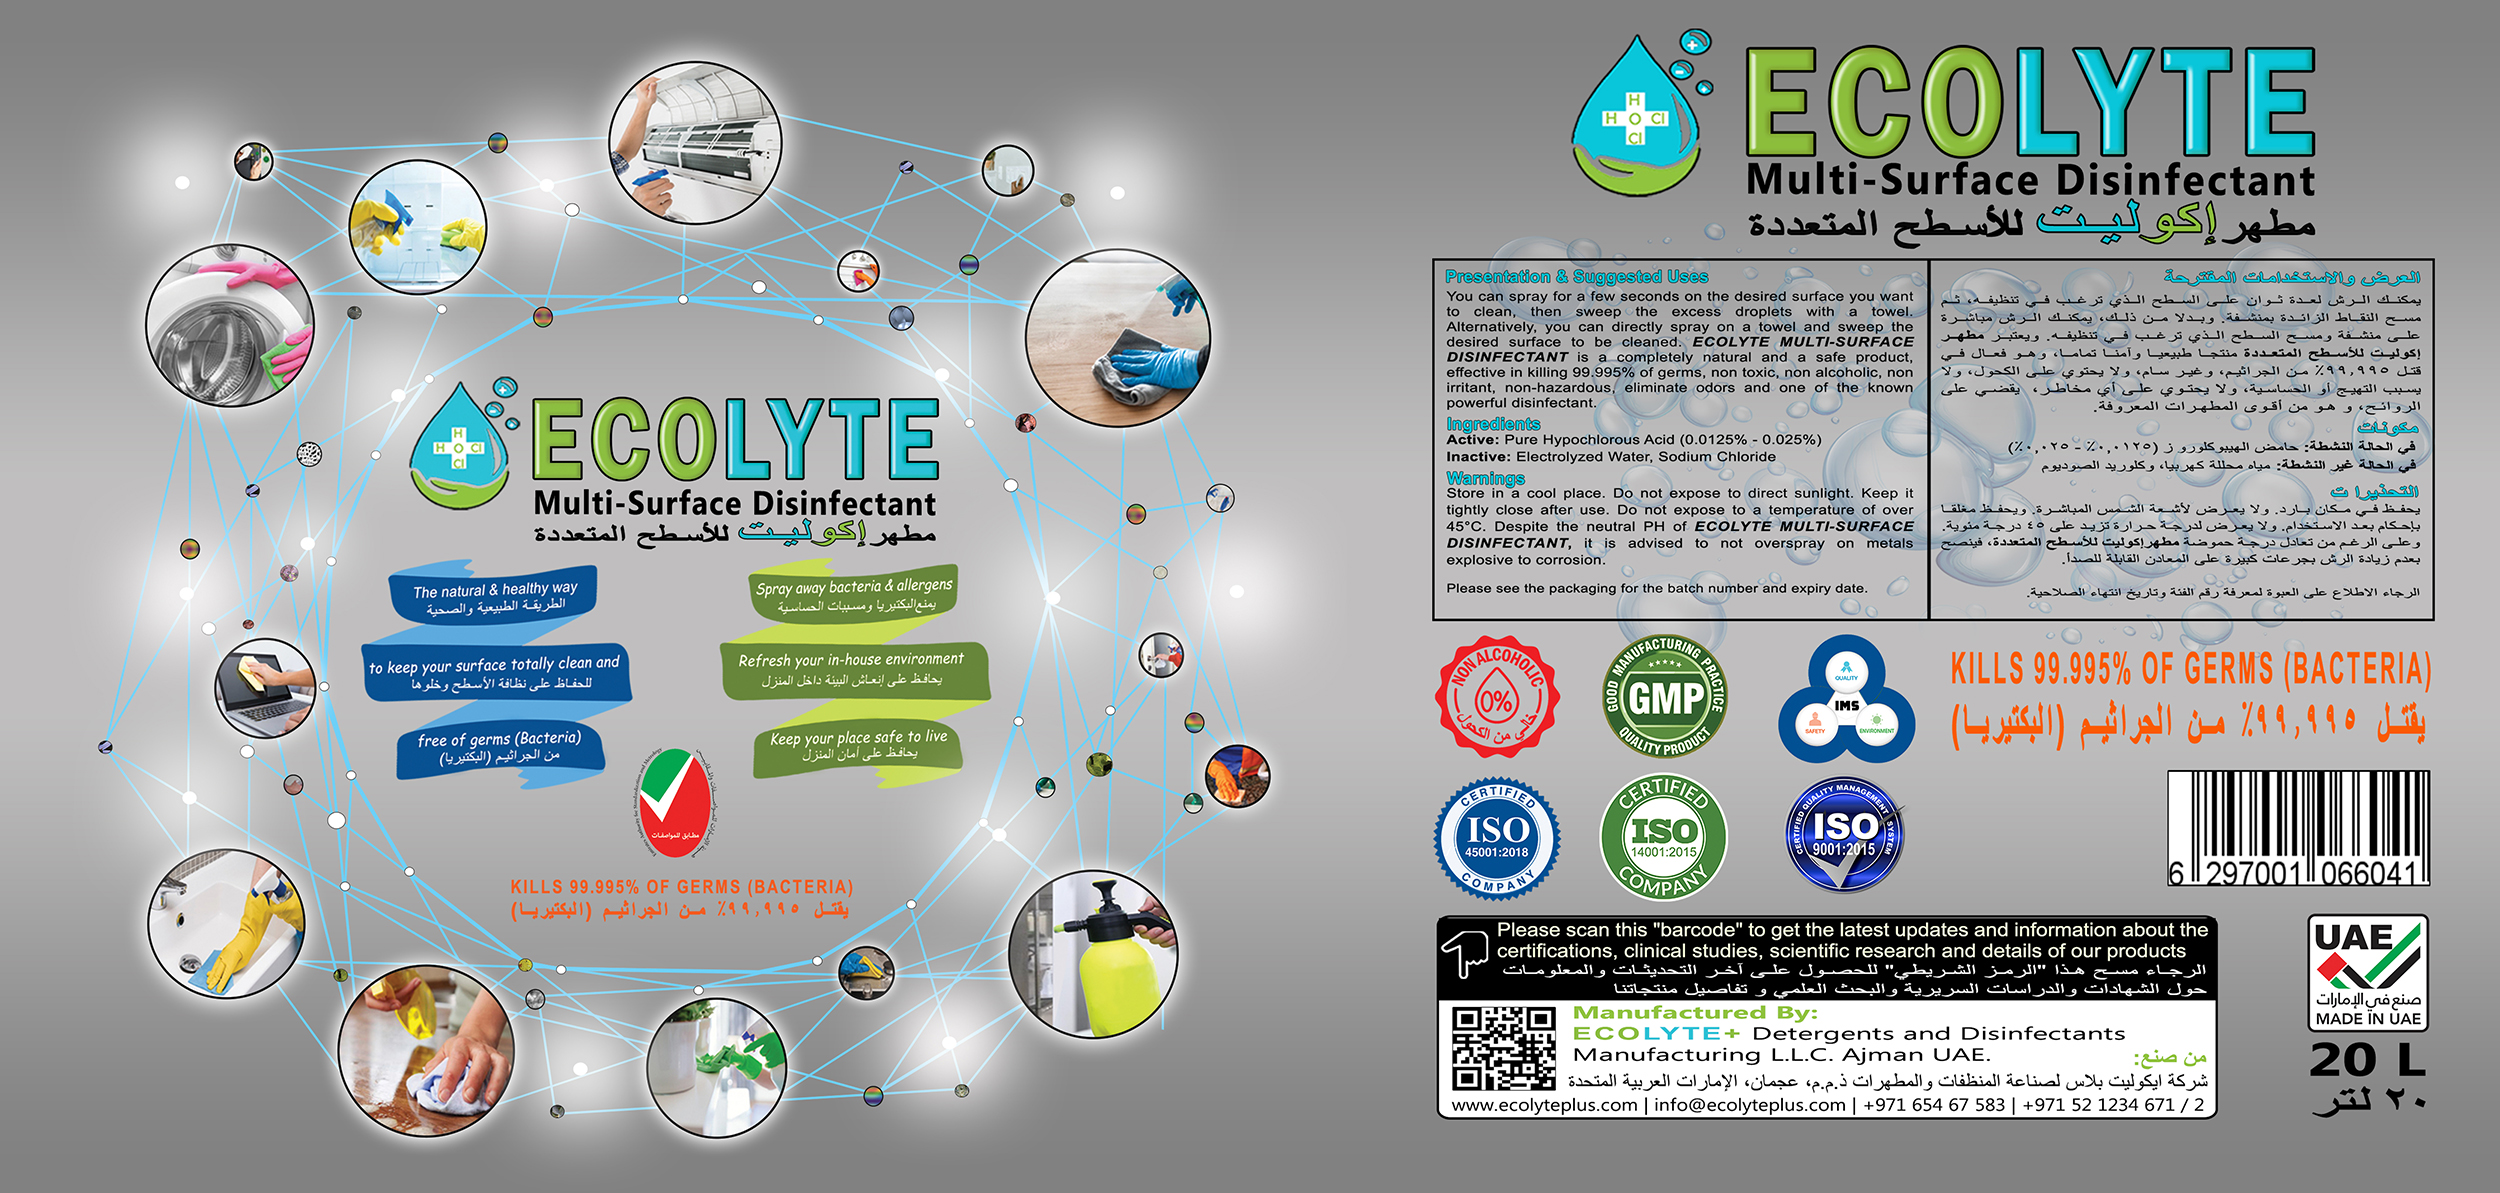 Ecolyte Multi-Surface Disinfectant 100% Natural - 20 Litre